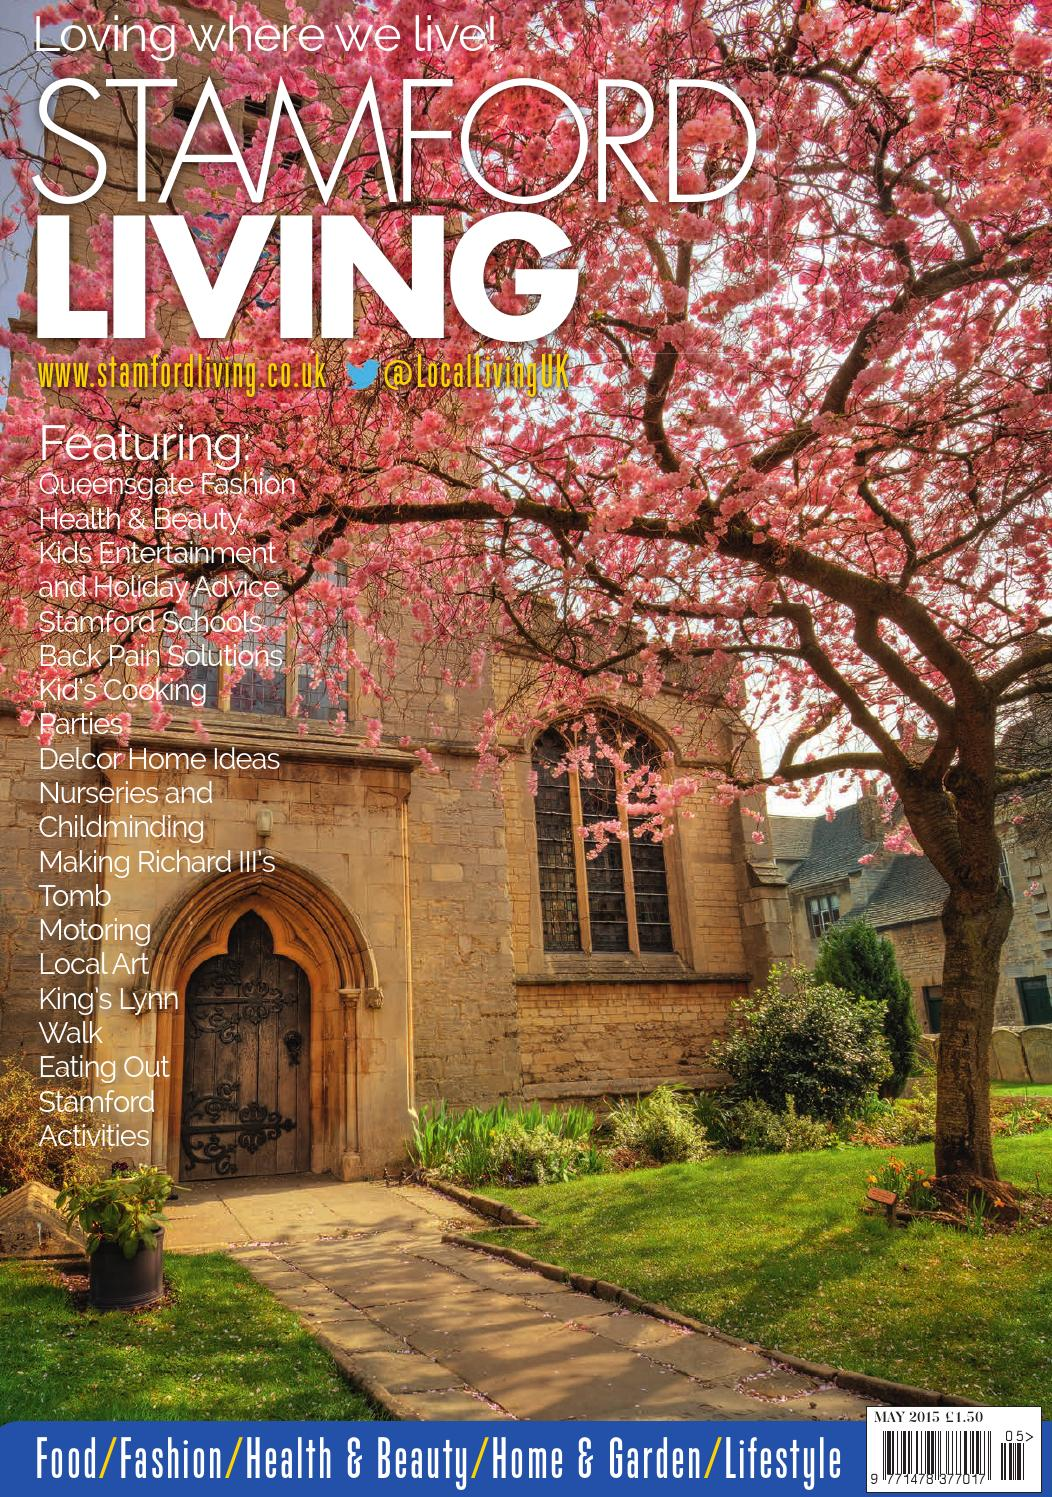 Stamford Living May 2015 by Best Local Living - issuu